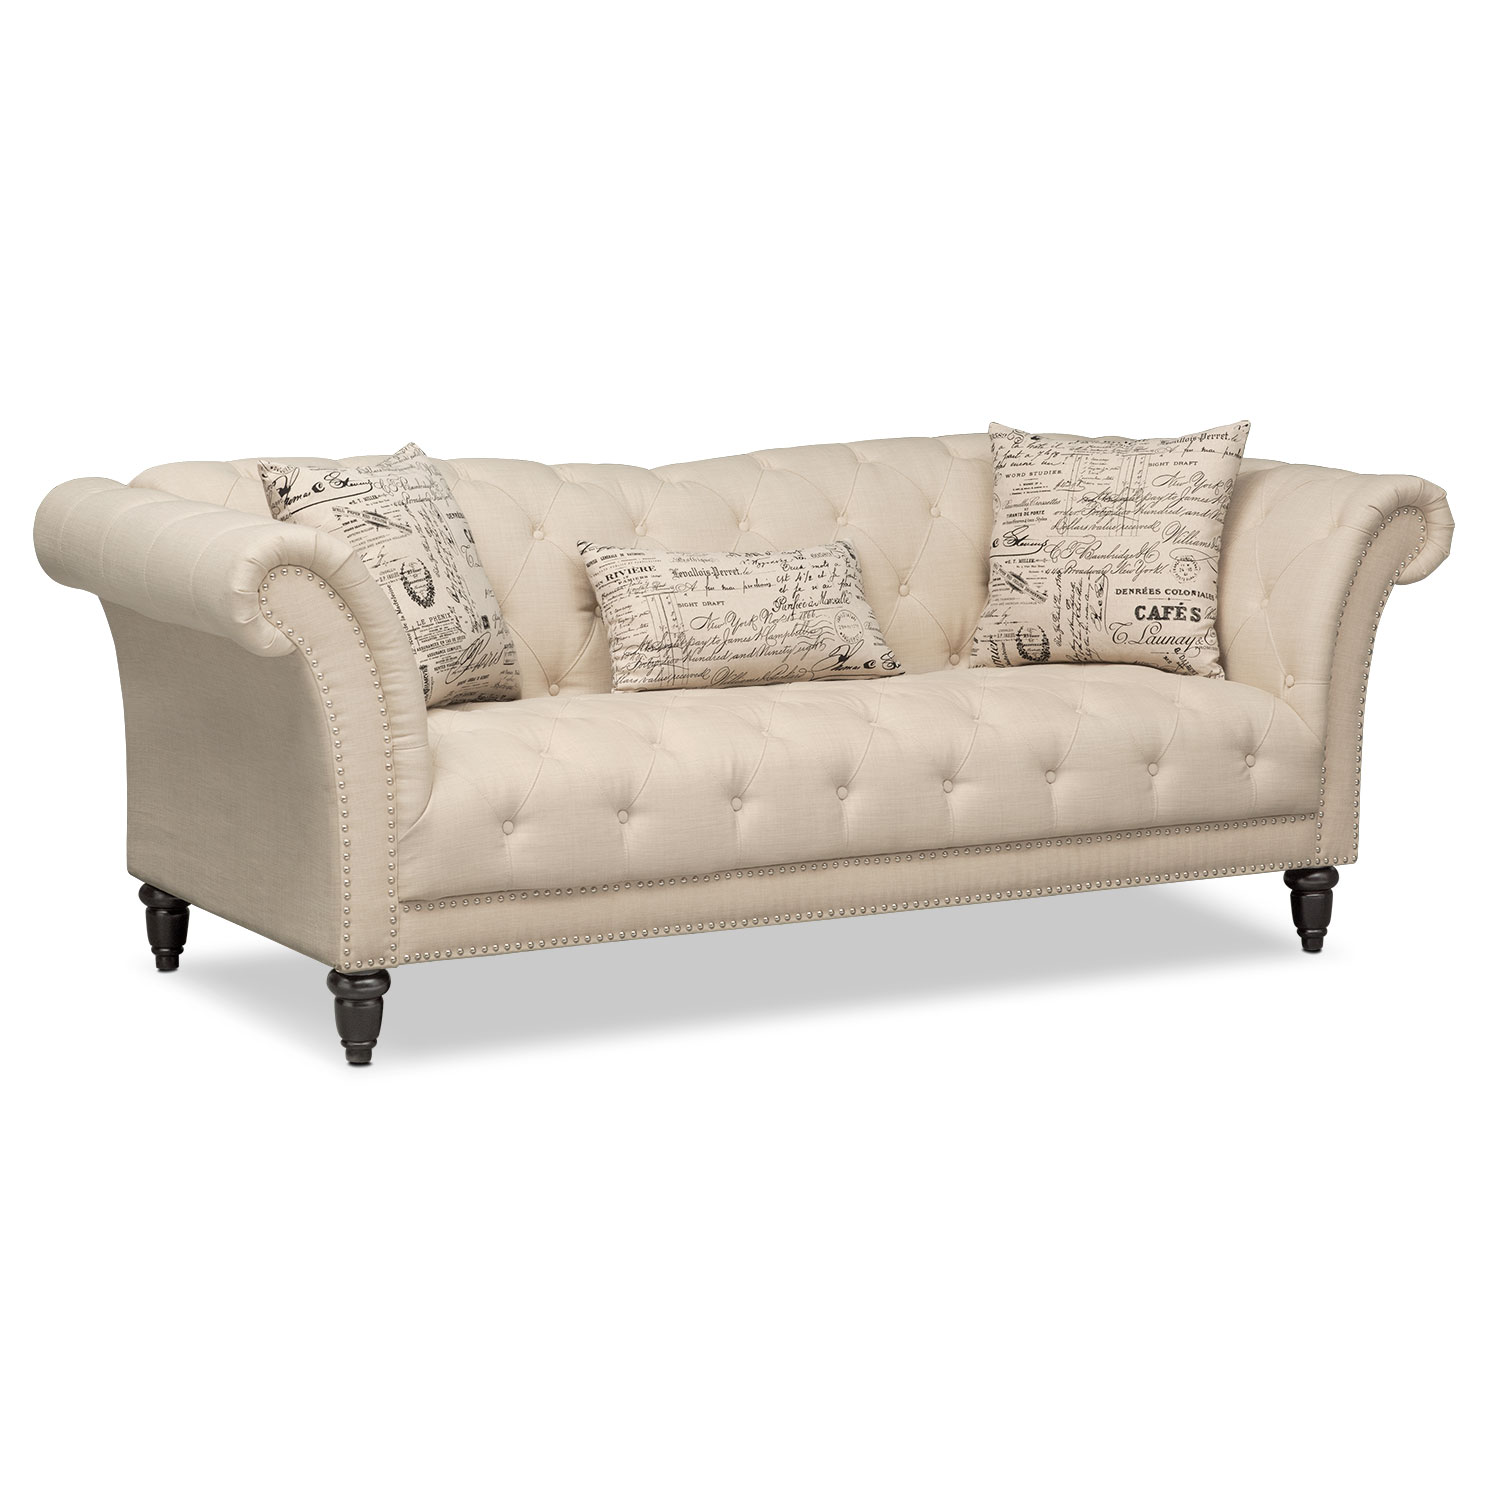 Marisol Sofa and Chaise Beige